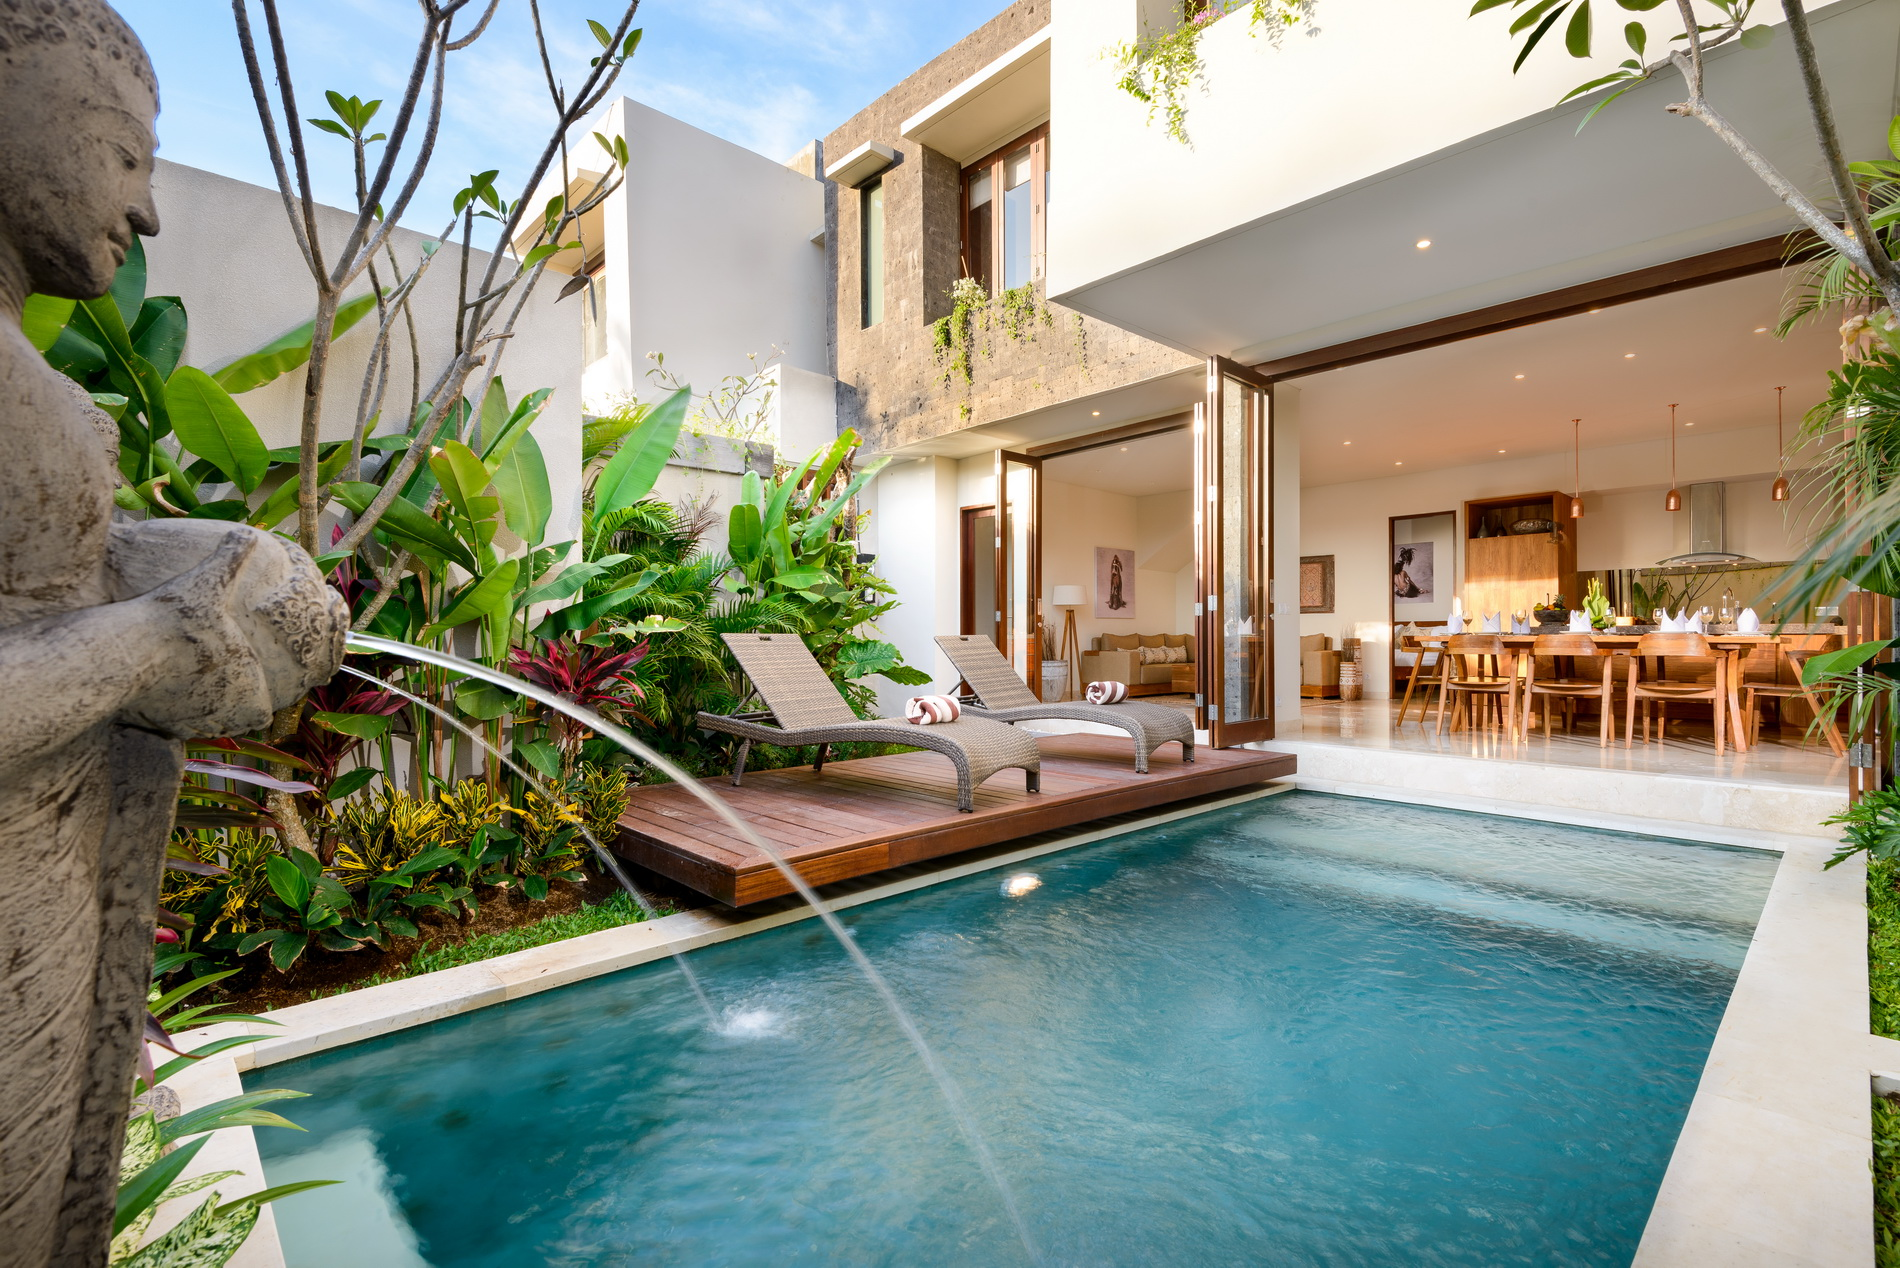 Villa Maria 4 bedroom villa in Legian, Bali. Photo by Asia Holiday Retreats.